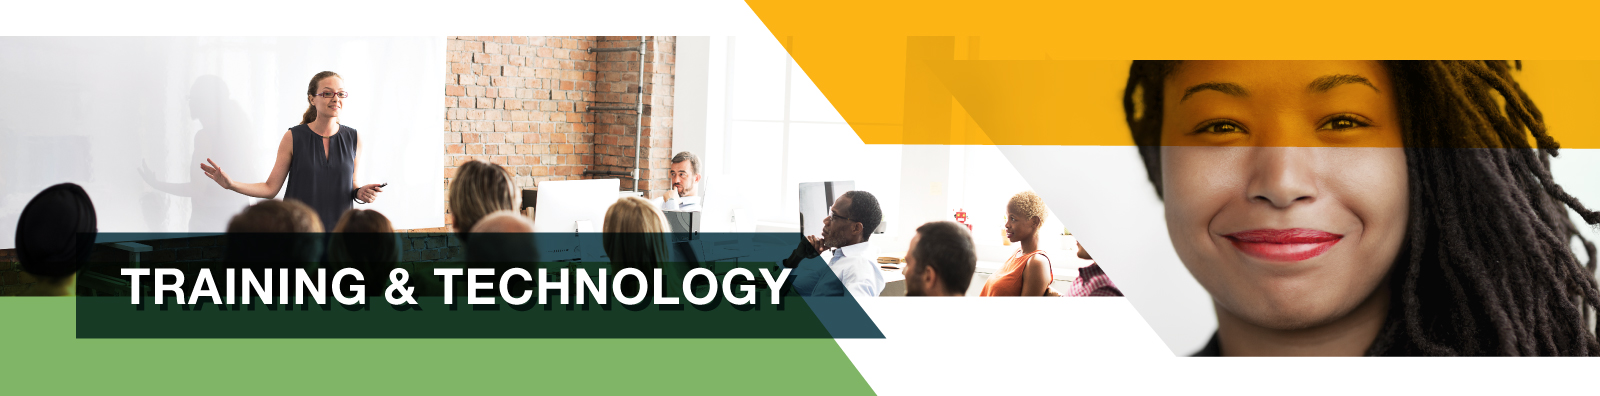 Header Image: Training and technology